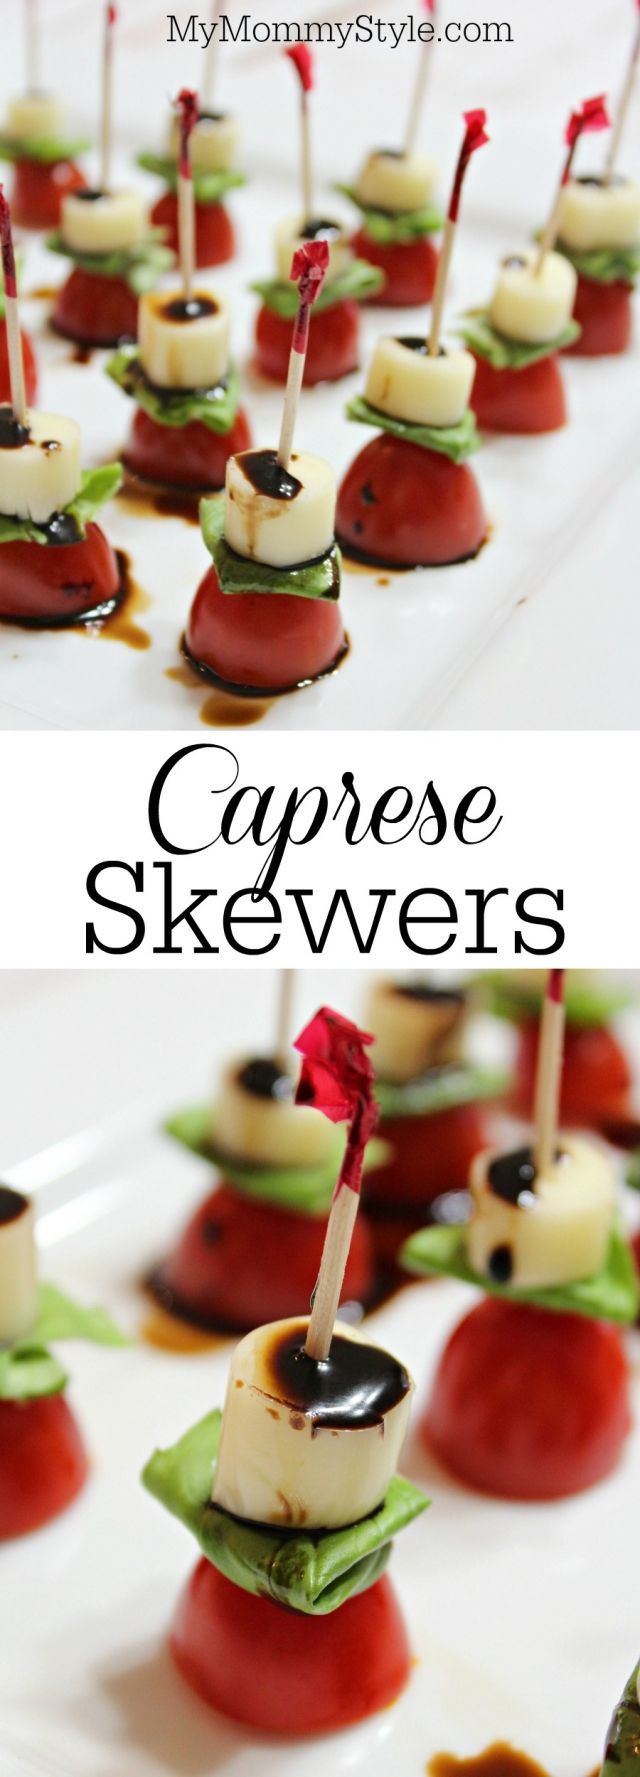 Caprese skewers with balsamic reduction drizzle - My Mommy Style